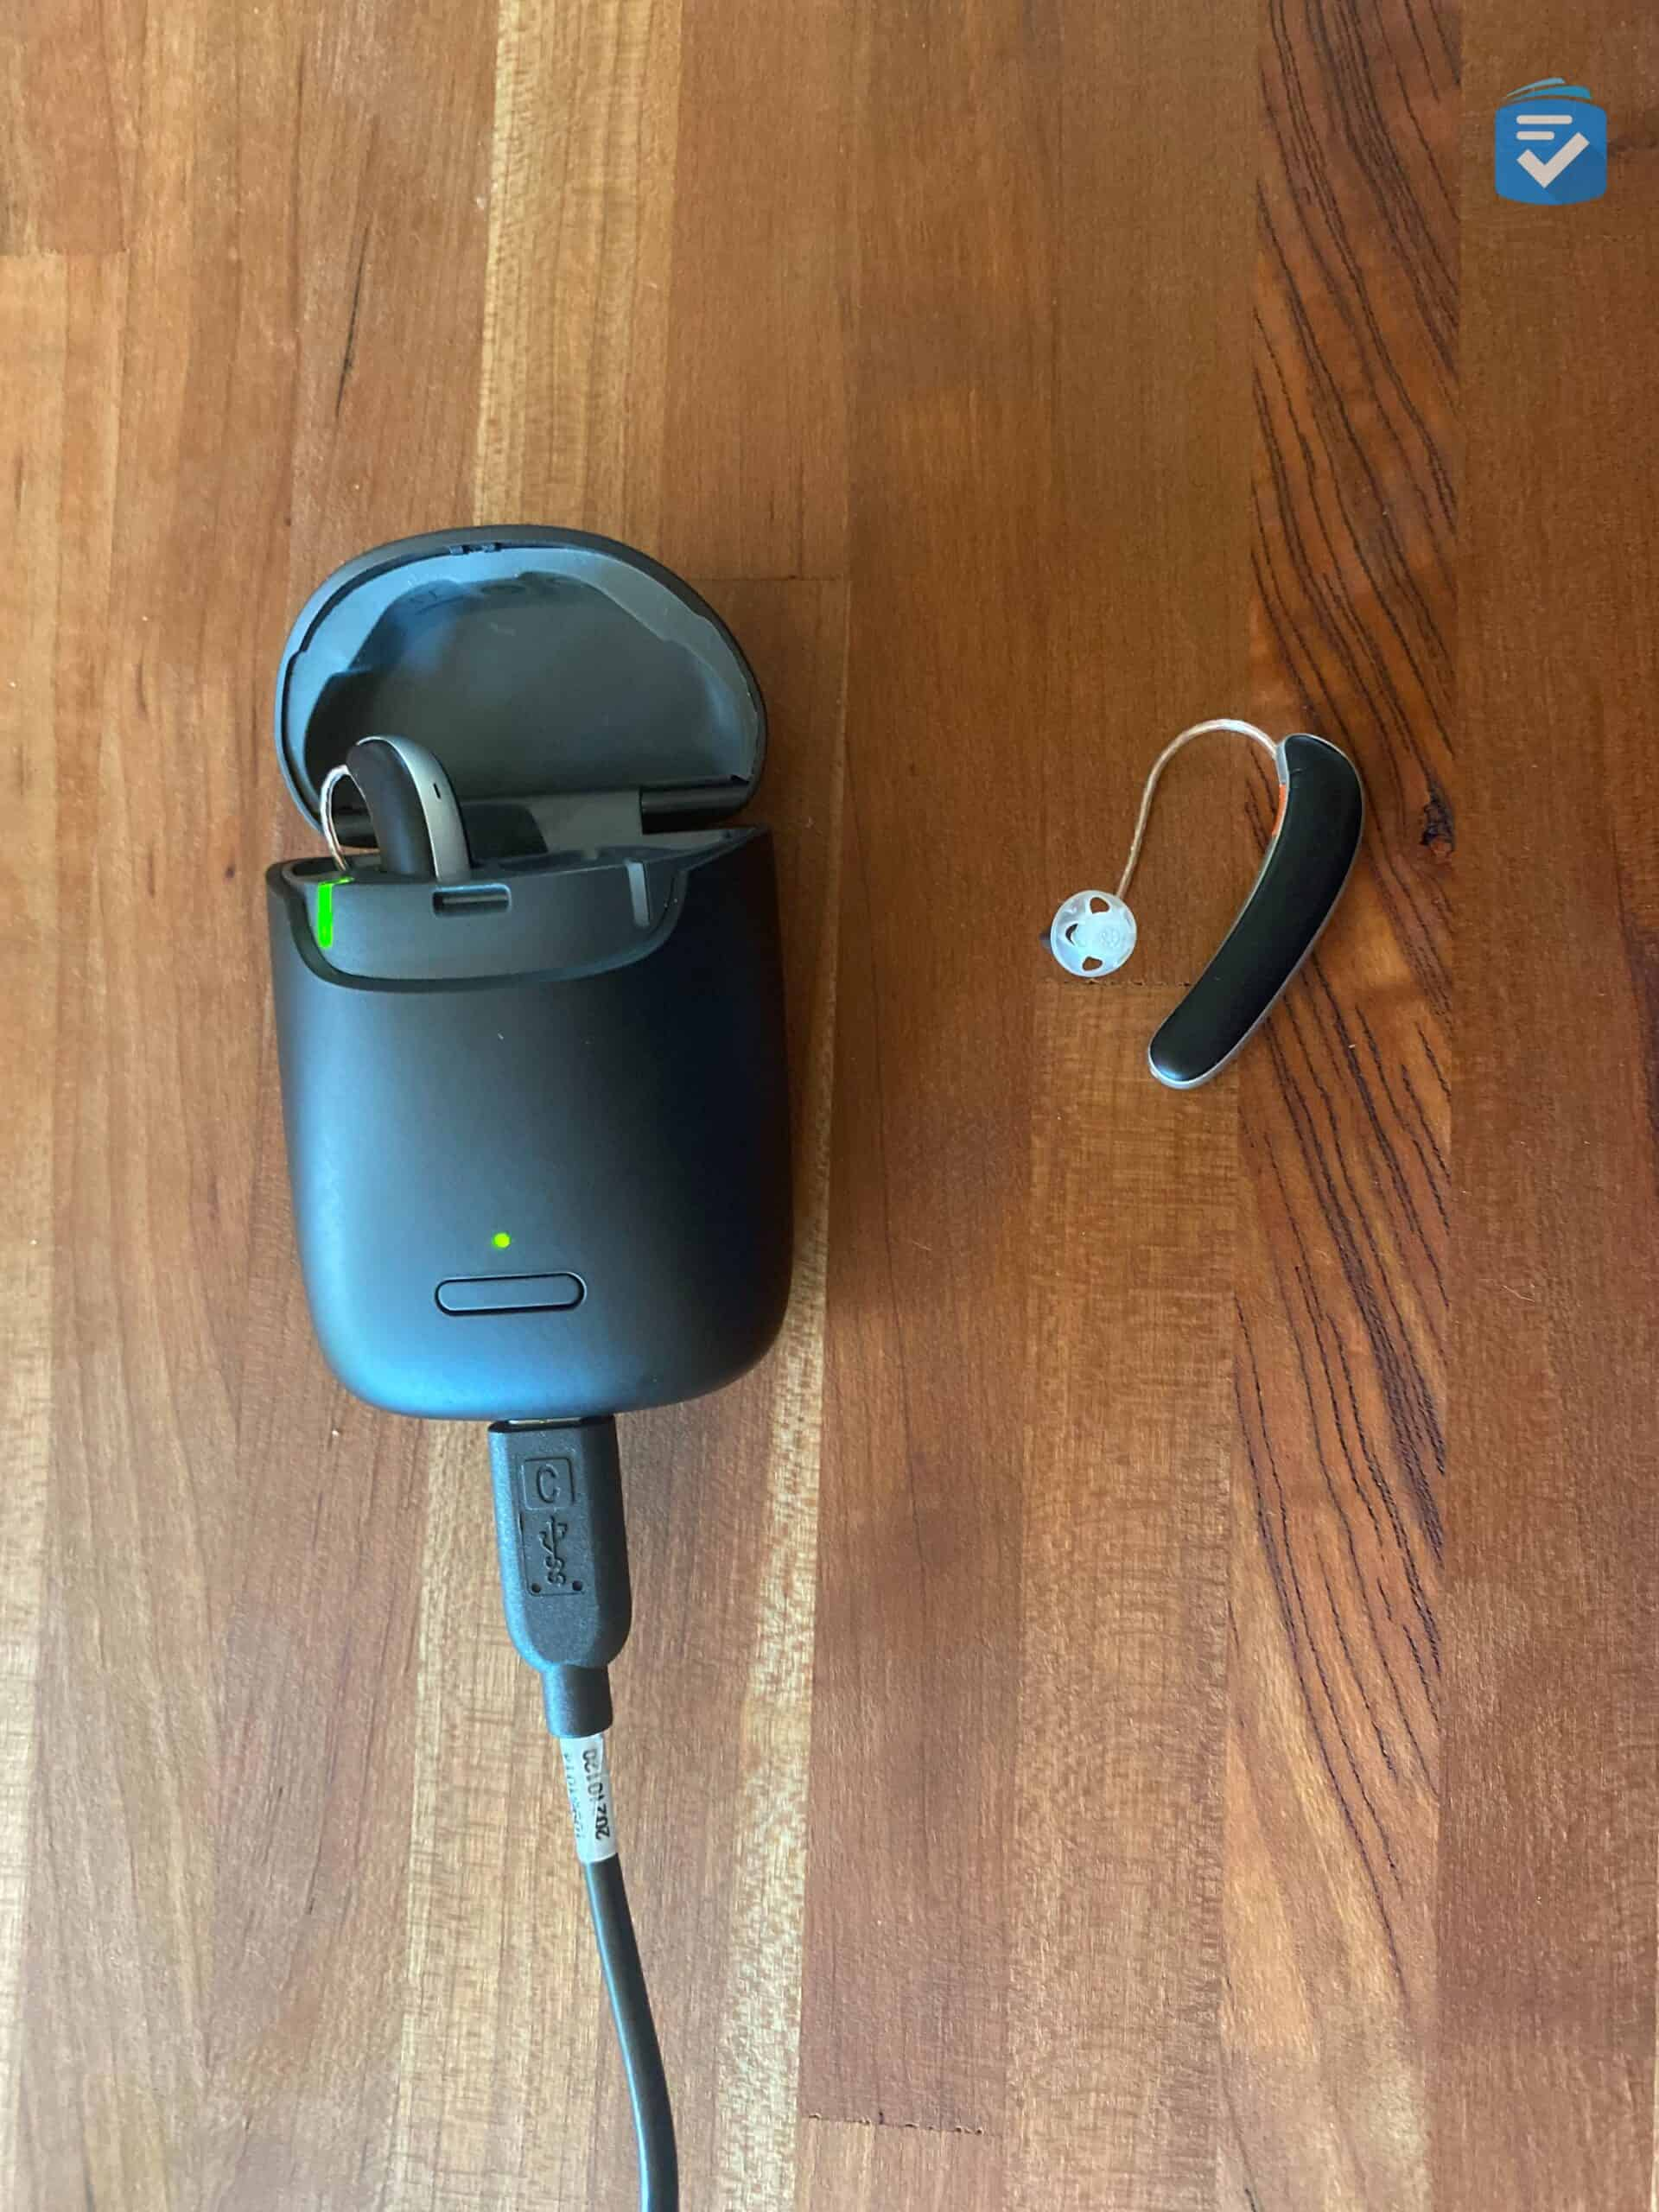 Hear.com Hearing Aid and Charger